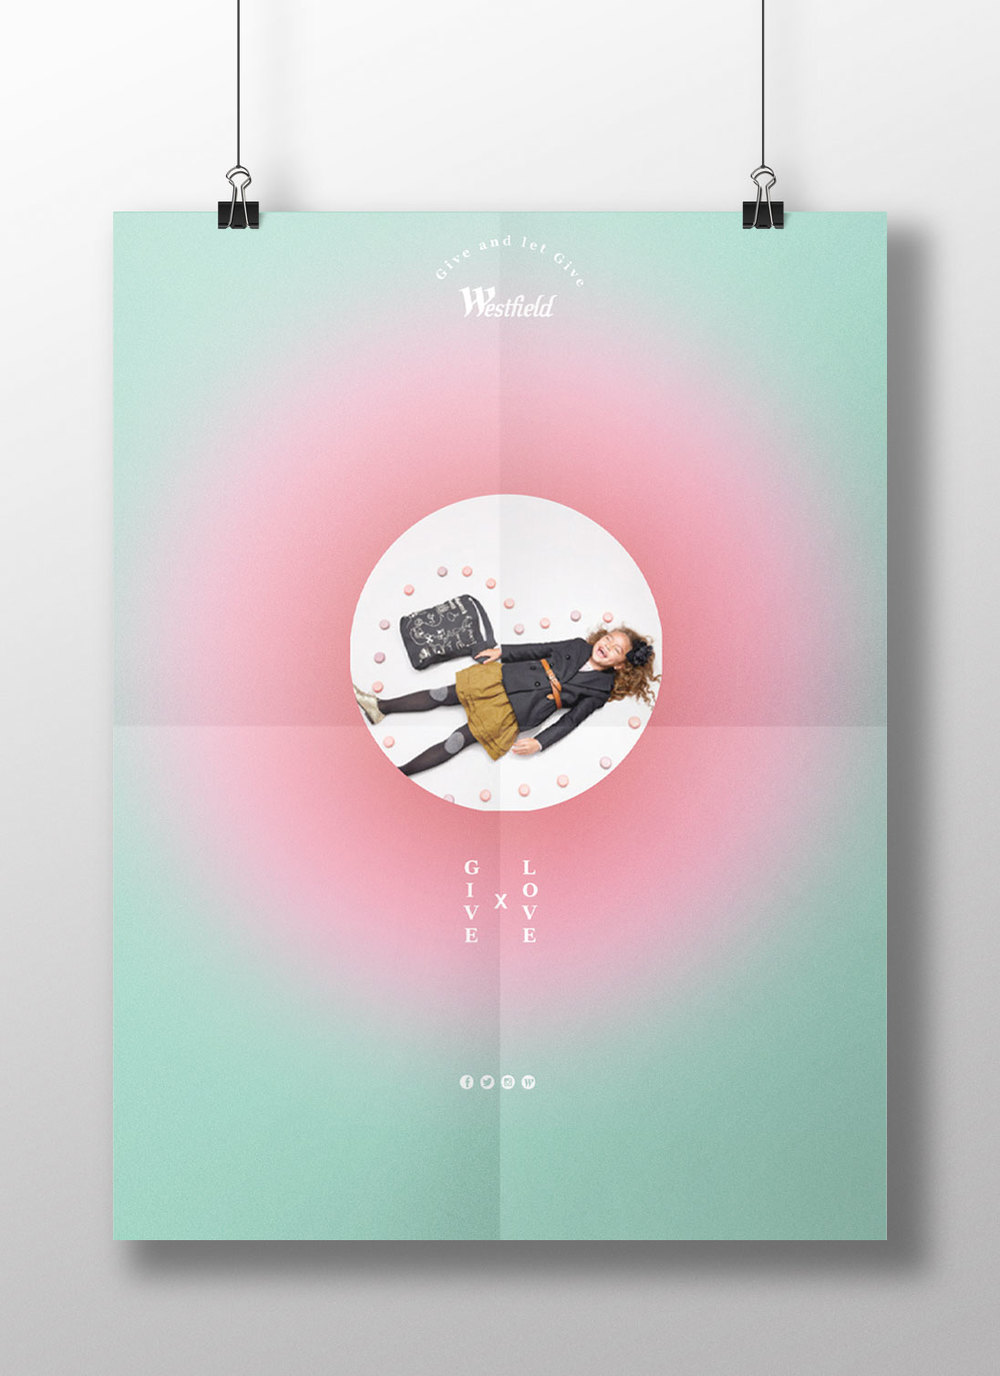 poster_mockup_holiday_1.jpg